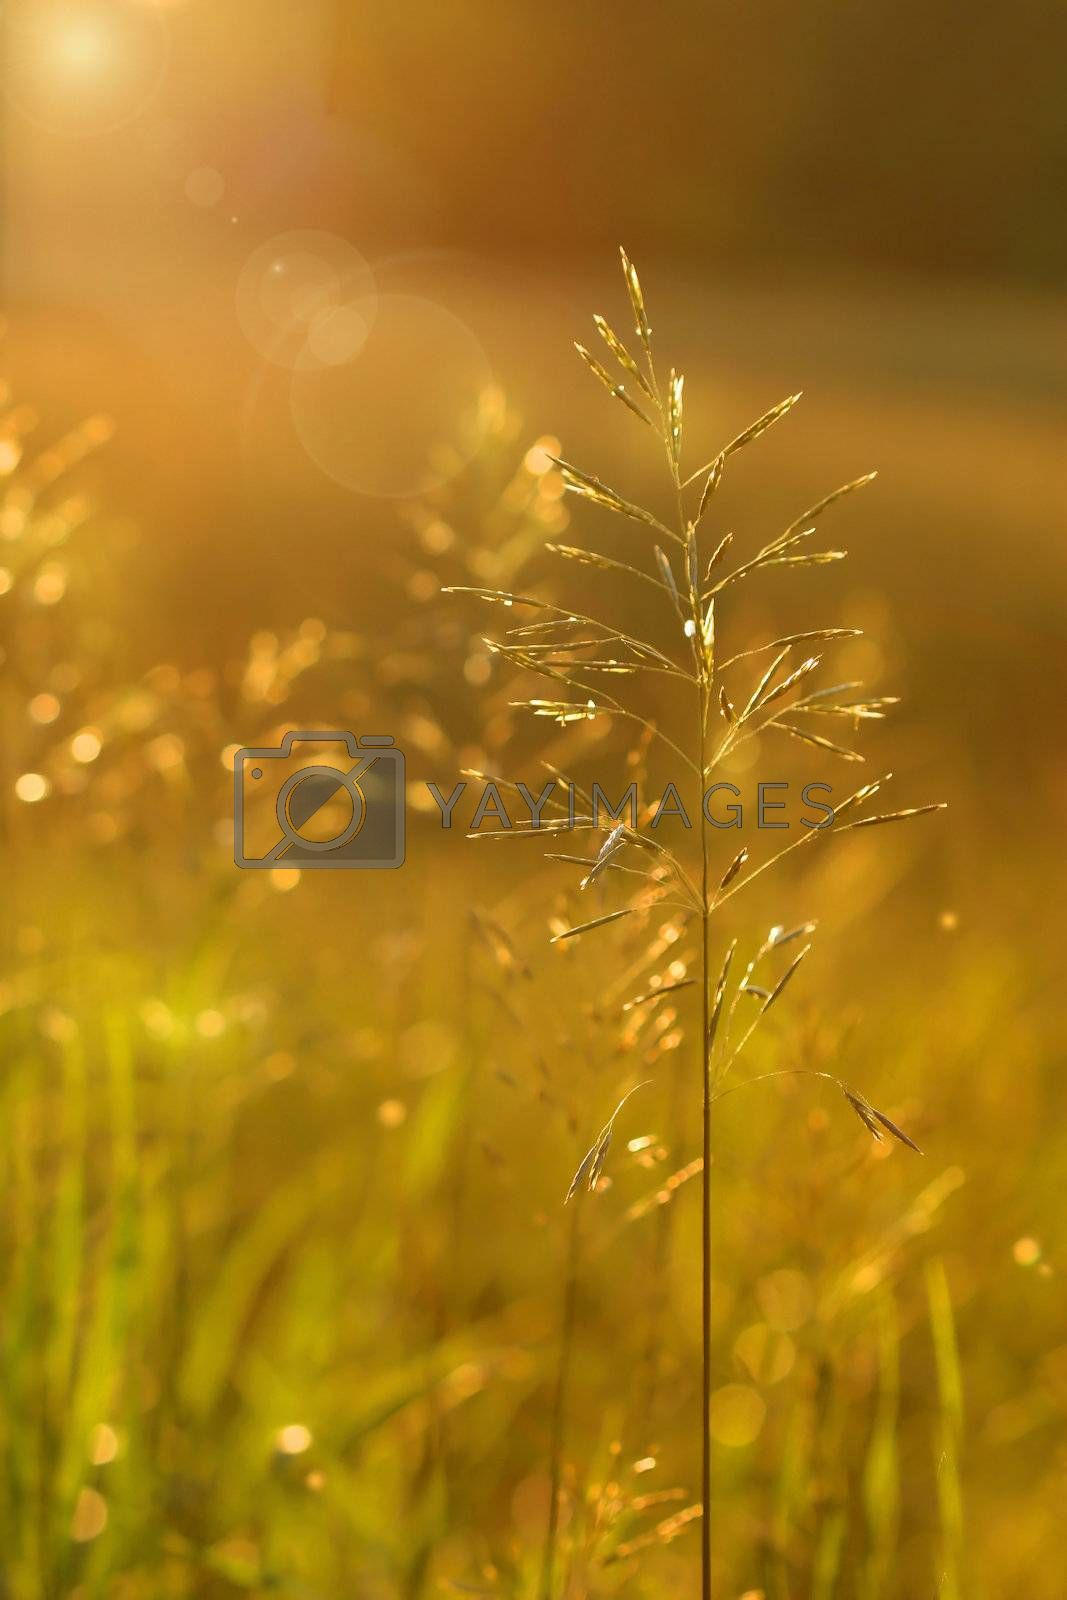 Golden glow in the early evening